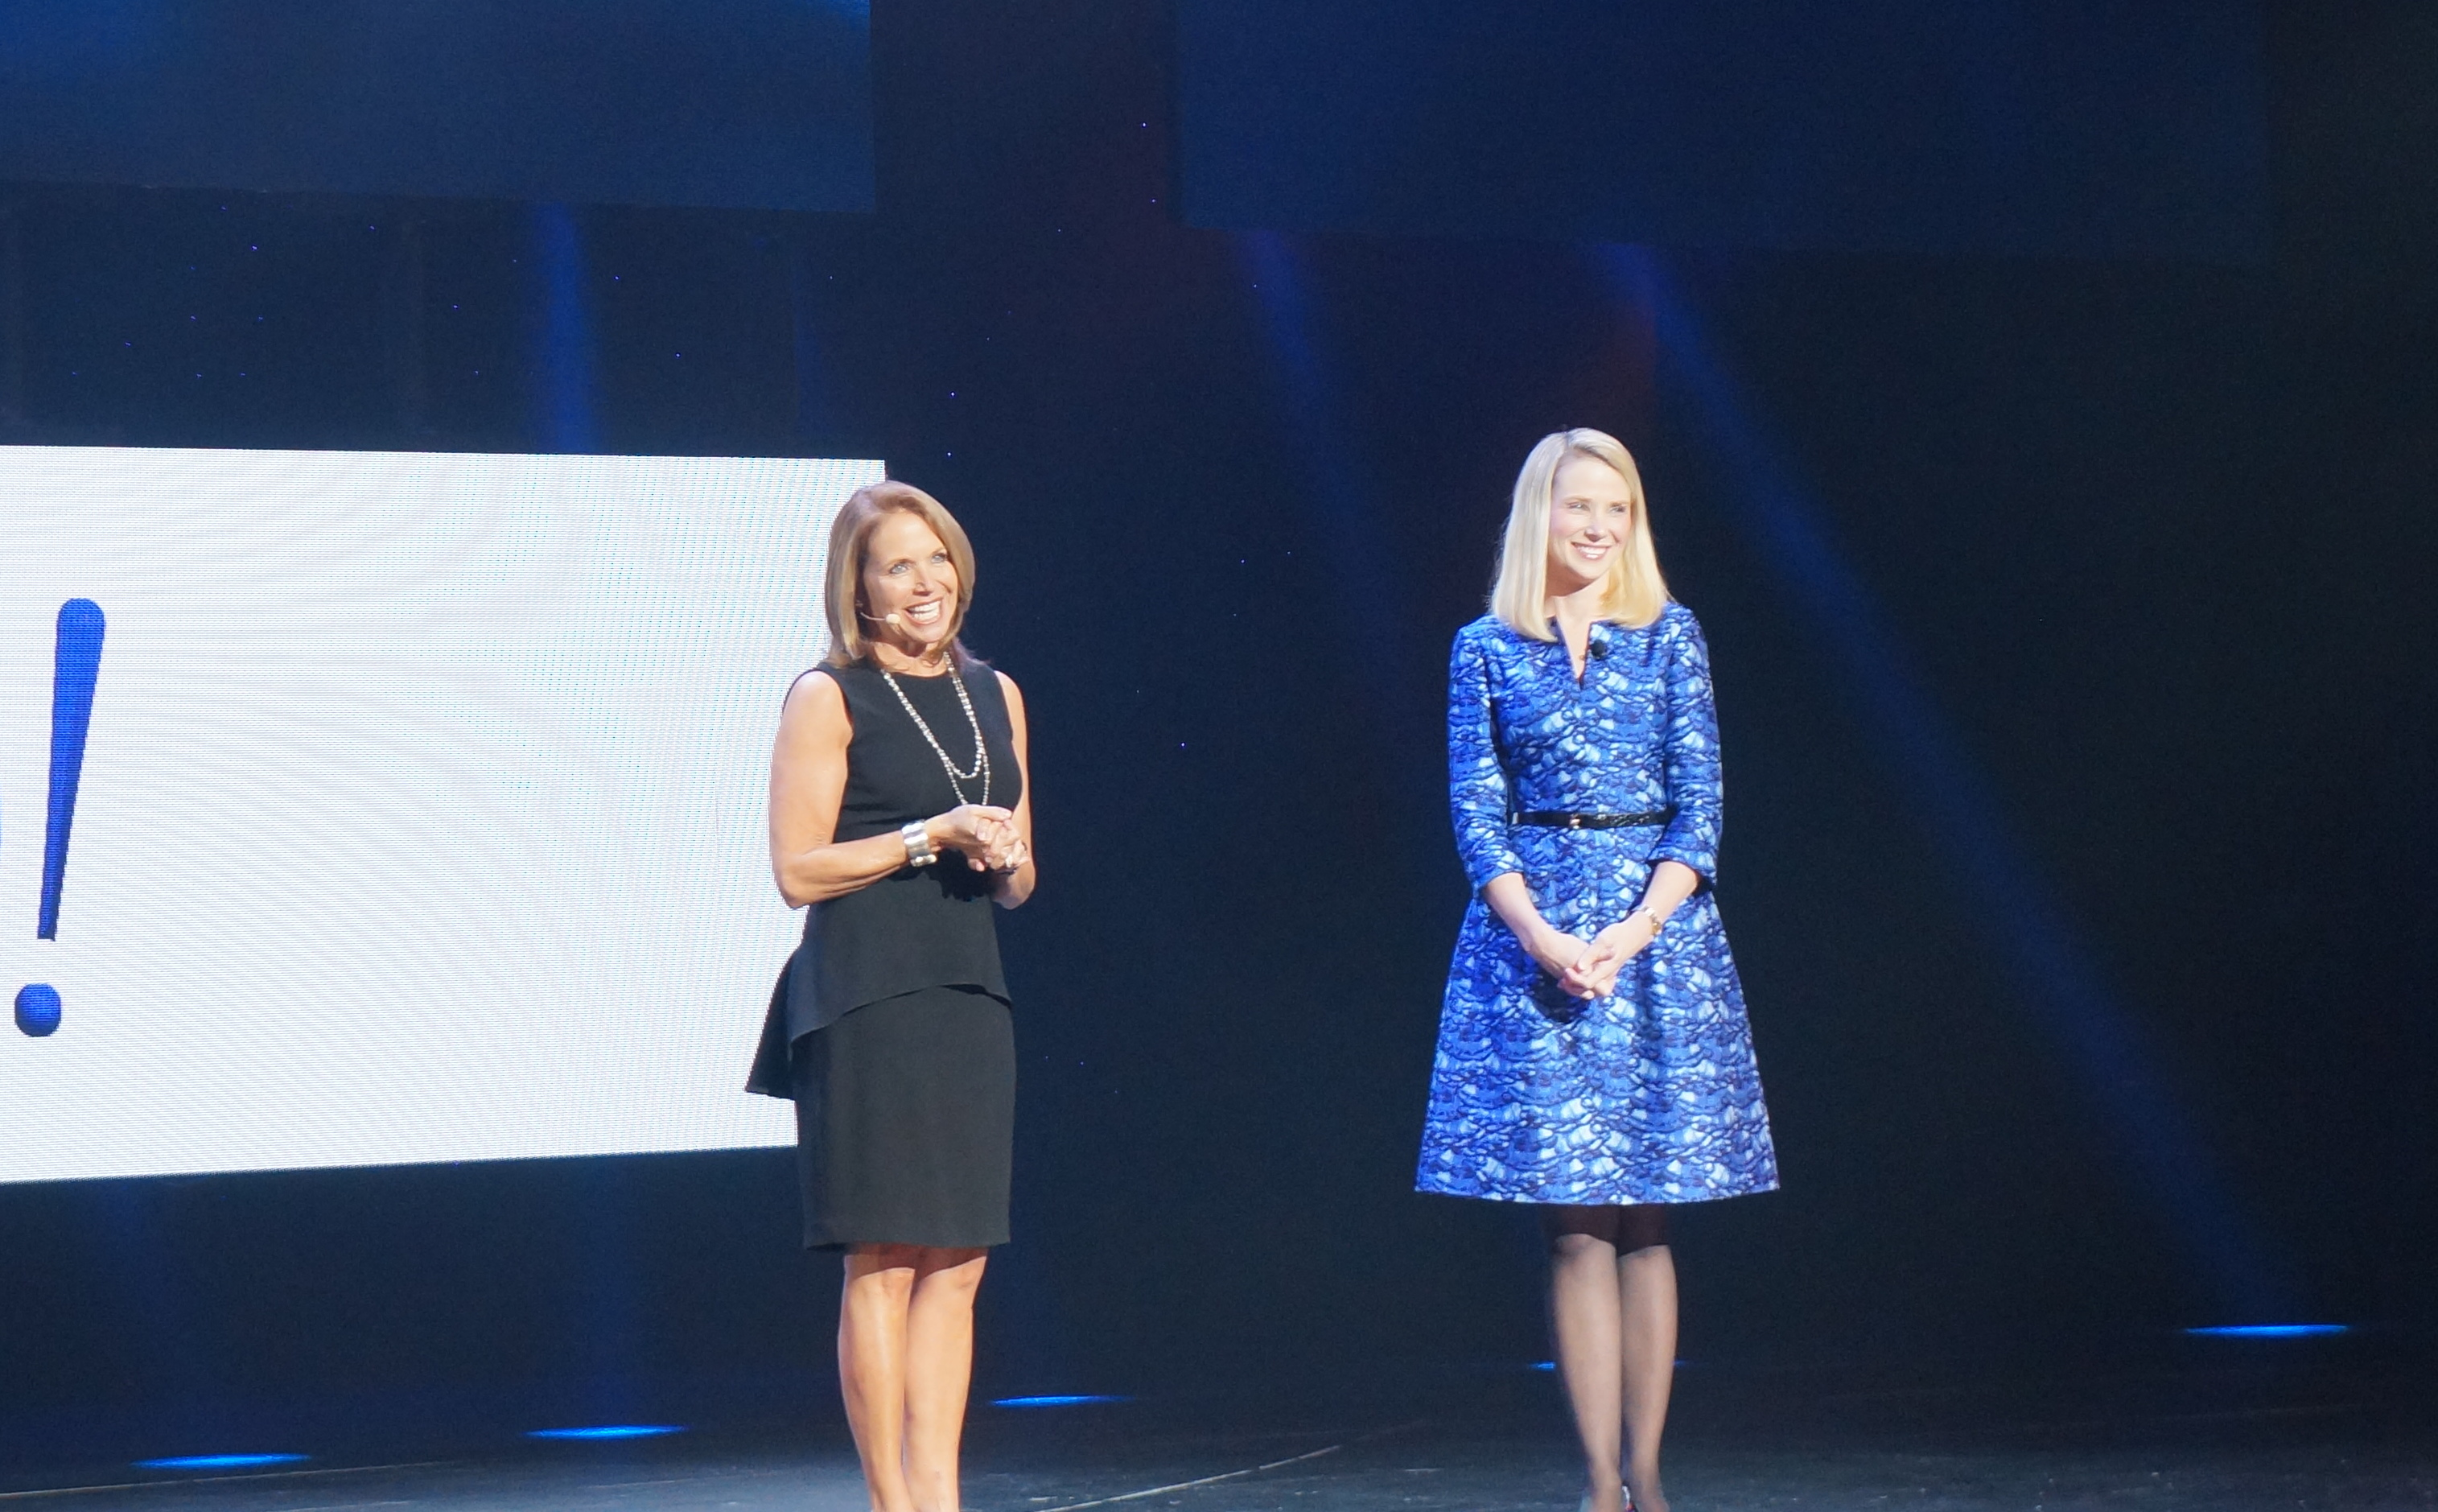 Recent Yahoo hire Katie Couric joins CEO Marissa Mayer during a keynote at CES 2014.